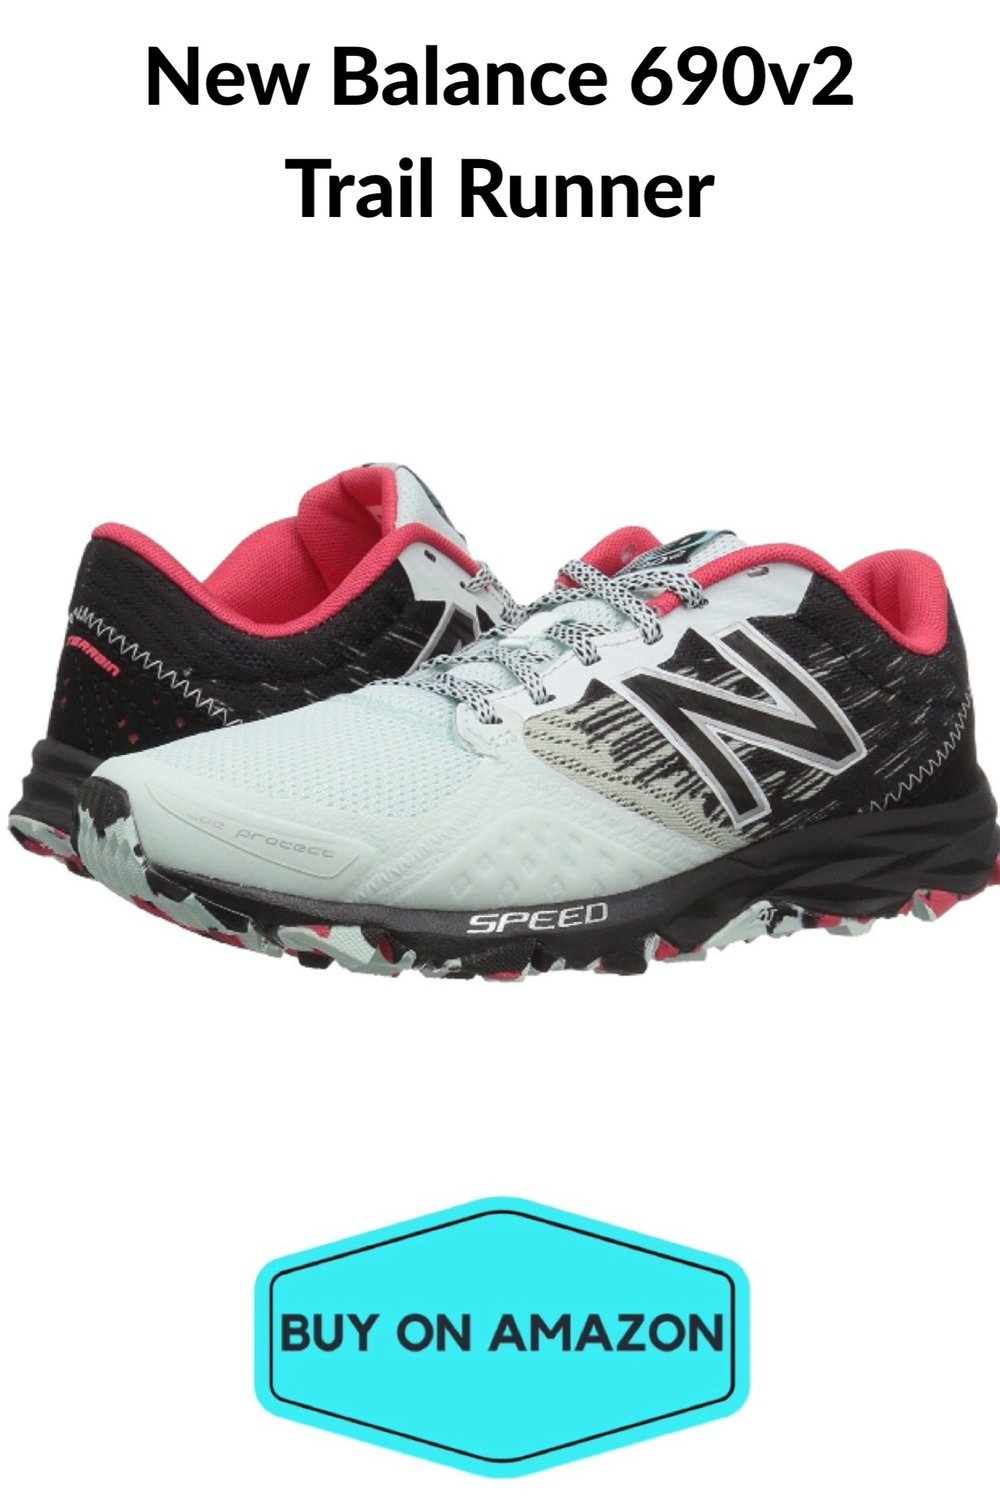 New Balance 690v2 Women's Trail Runner